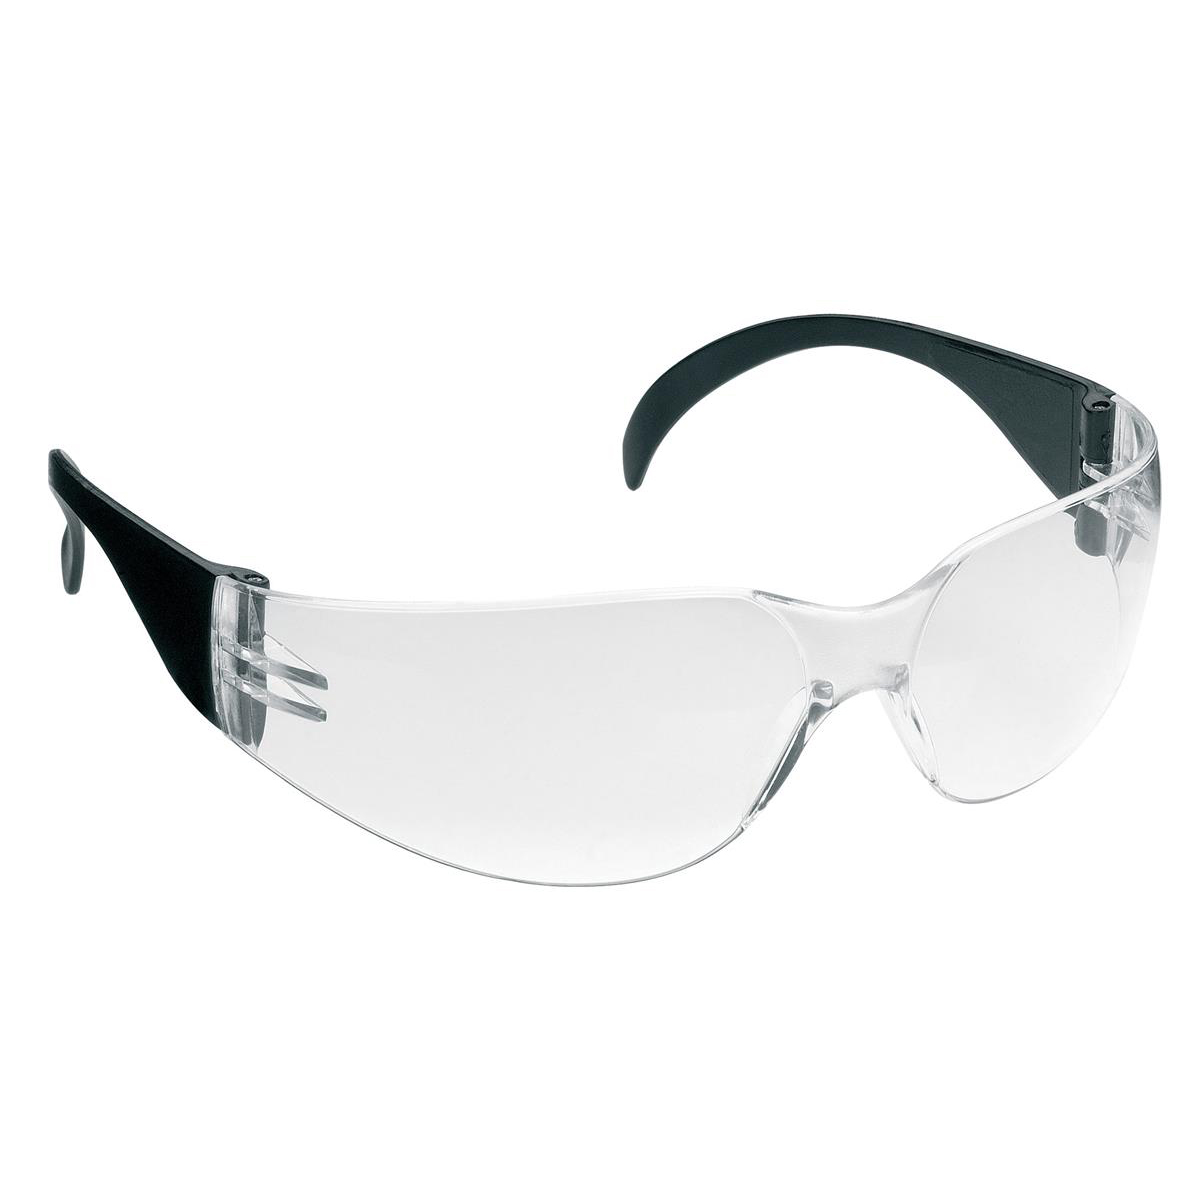 Safety glasses JSP M9400 Wraplite Safety Spectacles Single Lens Wraparound Clear Ref ASA718-161-10